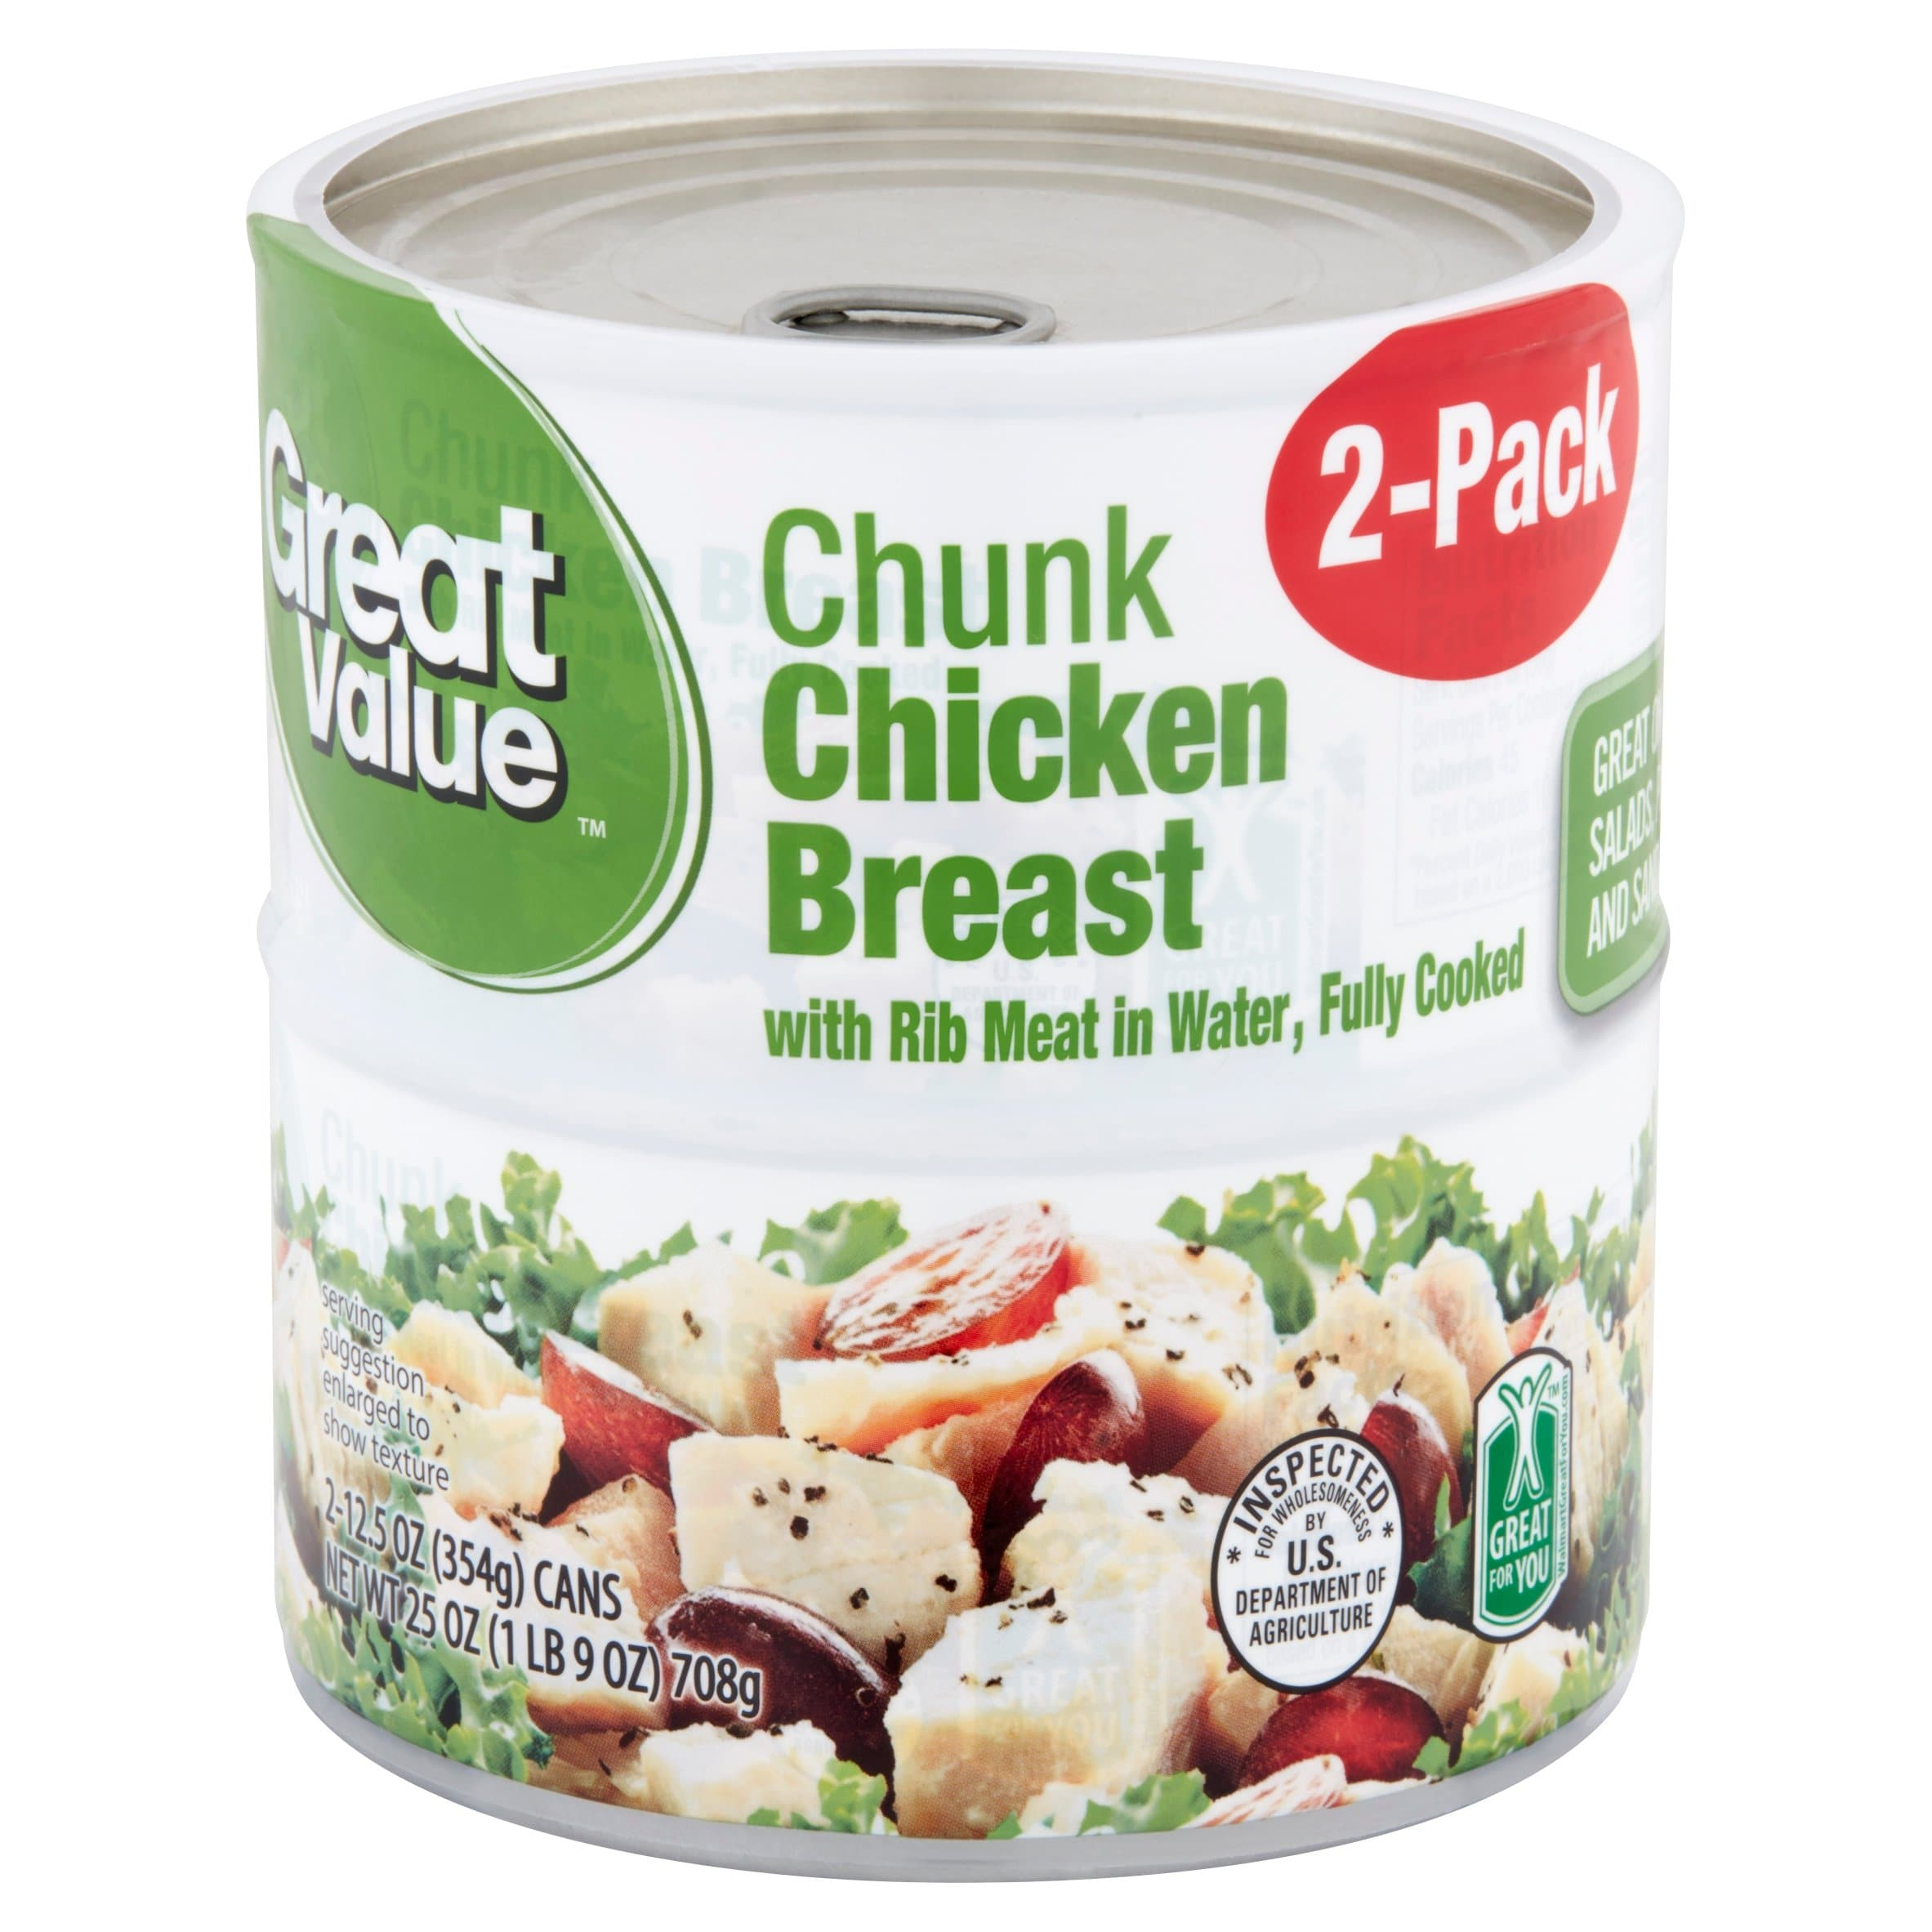 (2 Cans) Great Value Chunk Chicken Breast in Water, 12.5 oz - FLJ CORPORATIONS